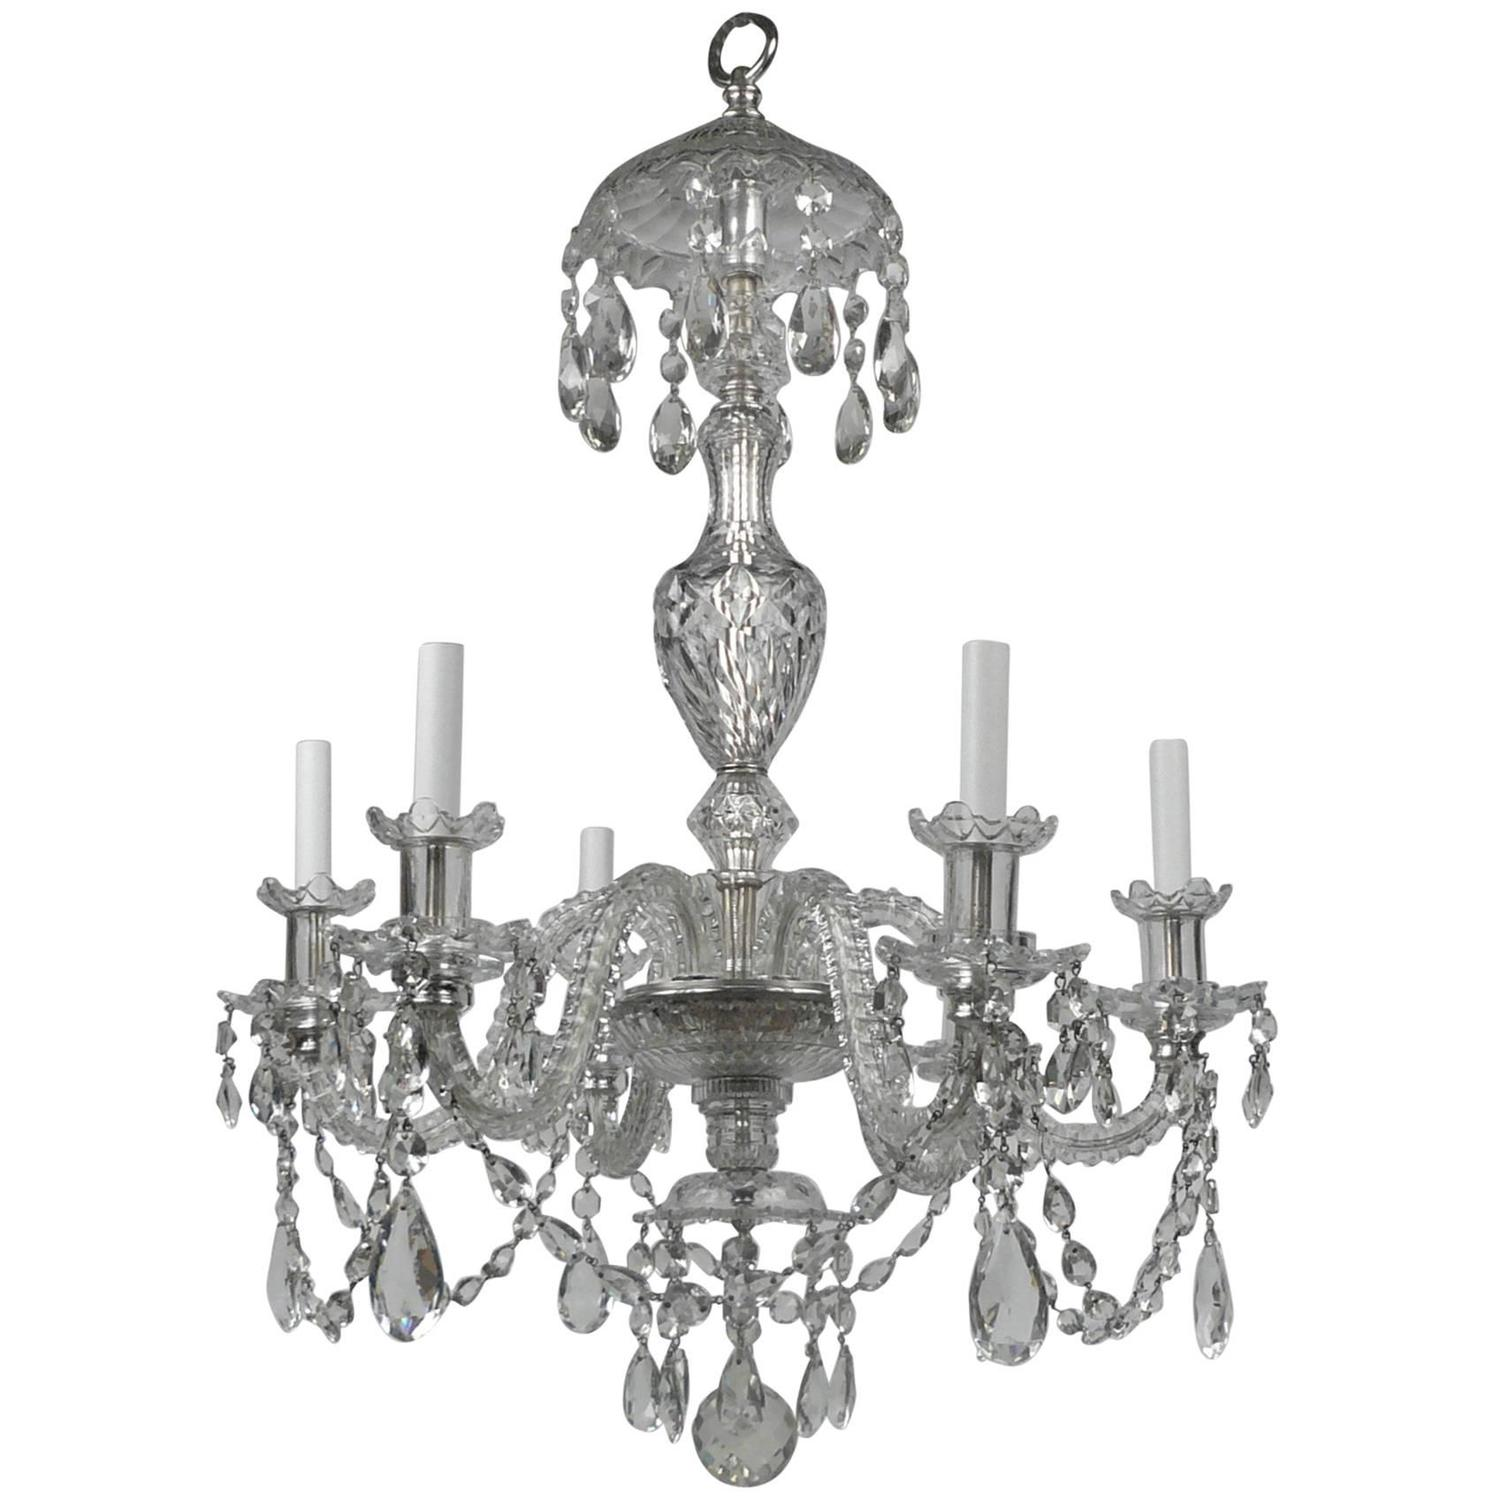 crafted setup chandelier lighting inspiring chandeliers with style magnificent iron of an design tuscan full world size